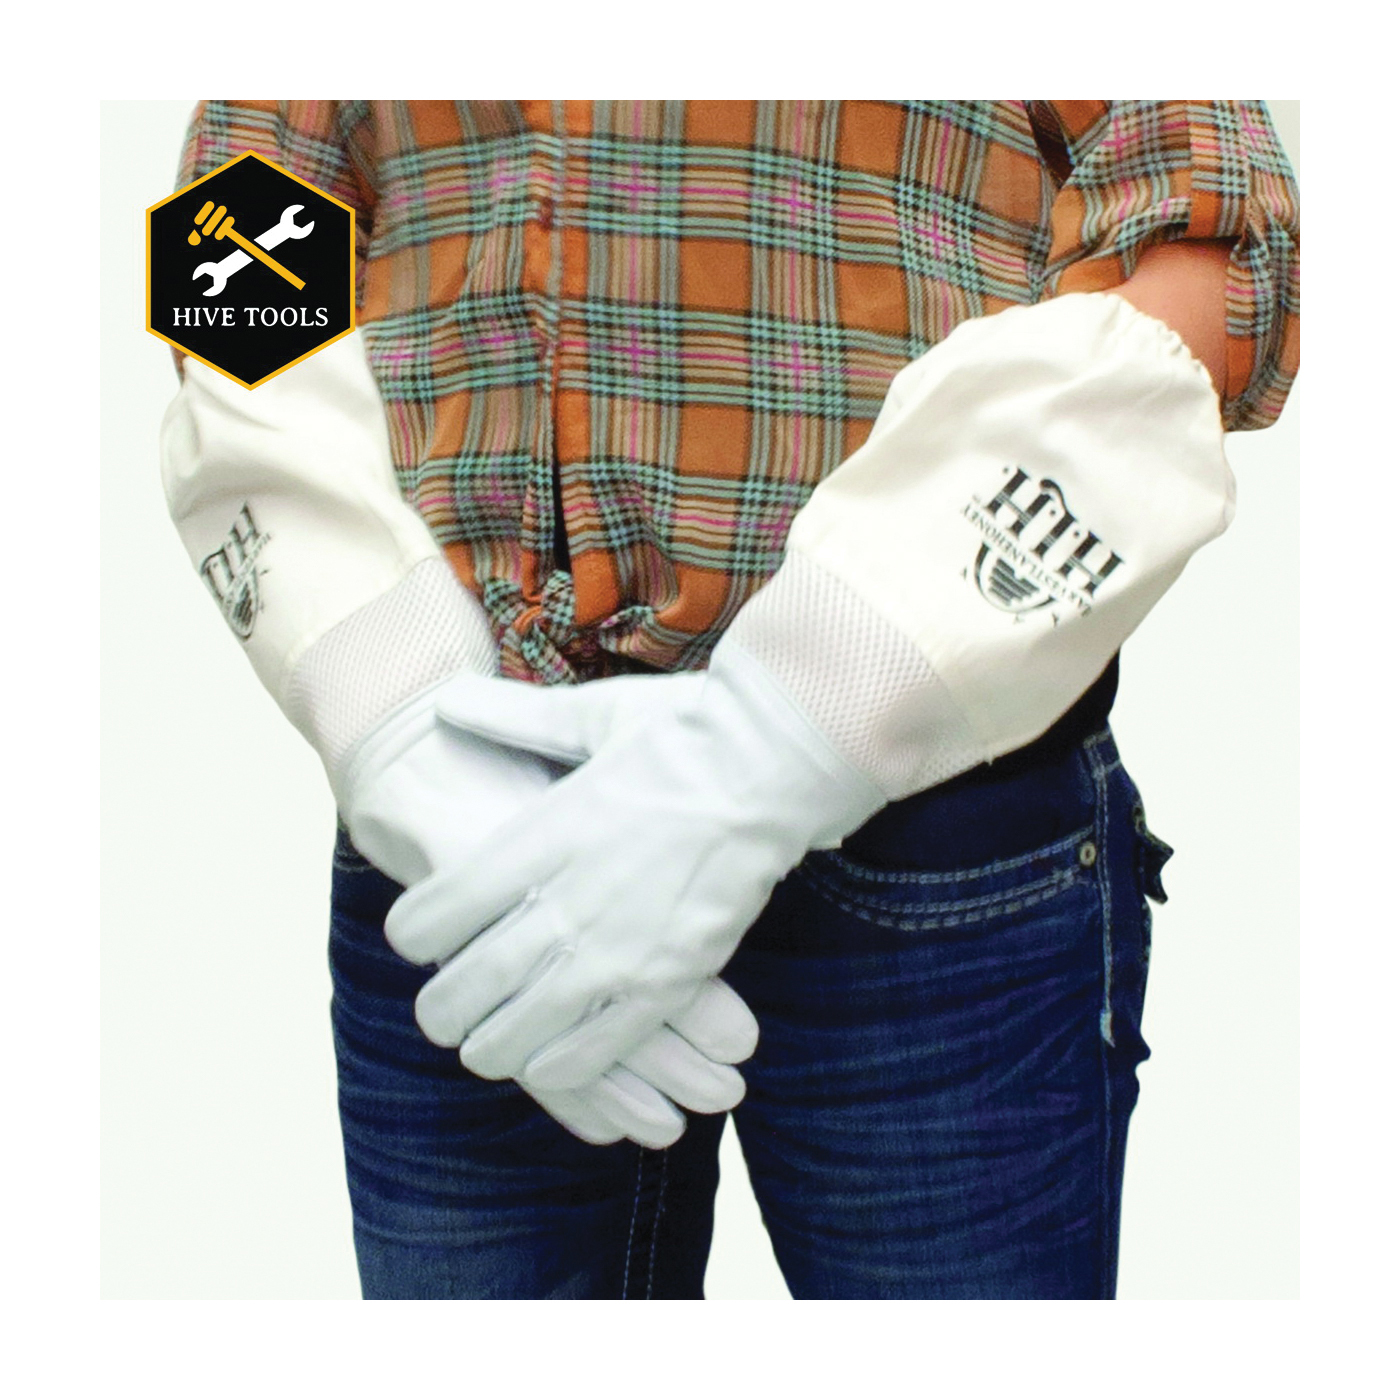 Picture of HARVEST LANE HONEY CLOTHGXS-103 Beekeeping Gloves, XS, Protective Hood, Goatskin Leather